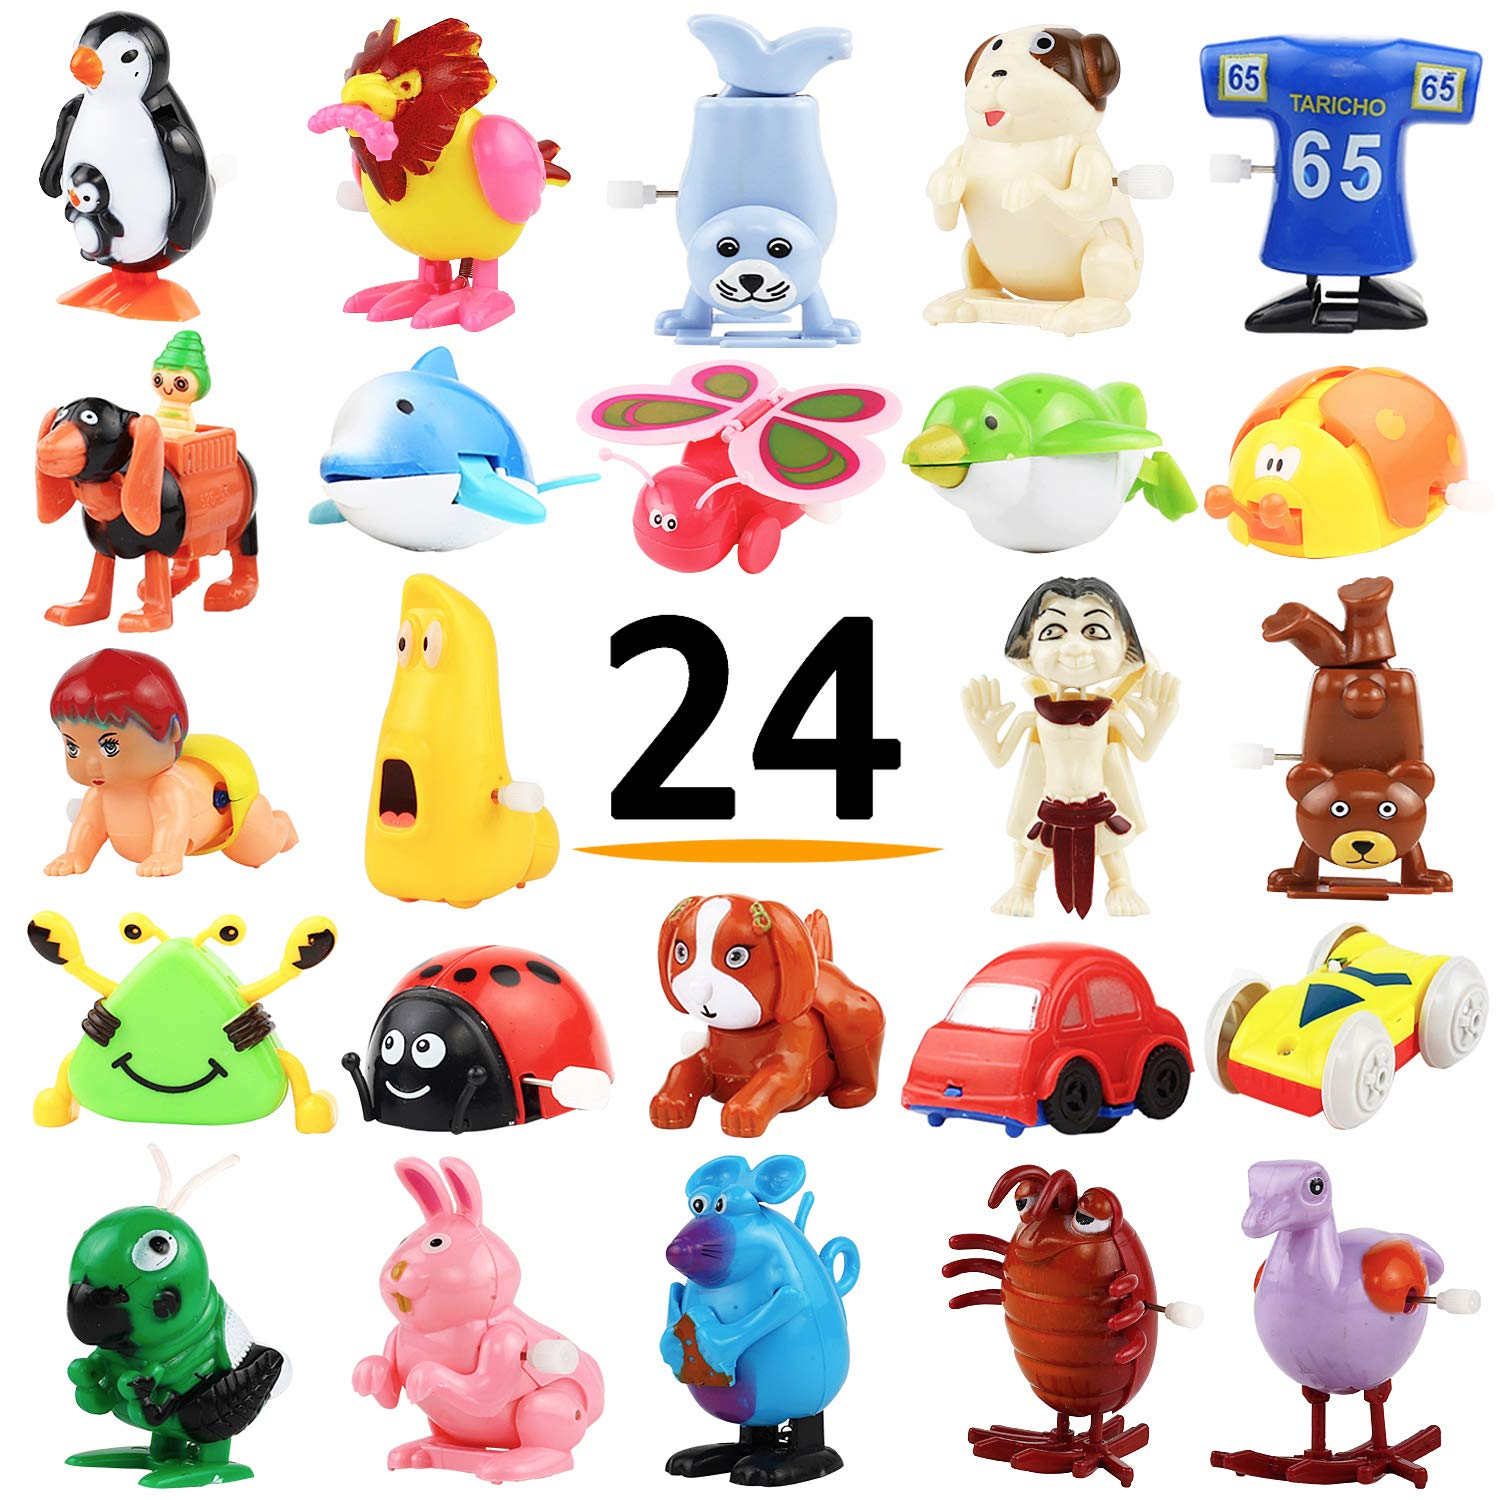 Wind-Up Toys, 24 Pack Assorted Mini Toy for Kids Party Favors, Birthday Goody Bag Filler Preschool Toy for Boys Girls Children,Gifts Giveaway Pinata Filler Carniva Prizes Classroom Incentive Reward